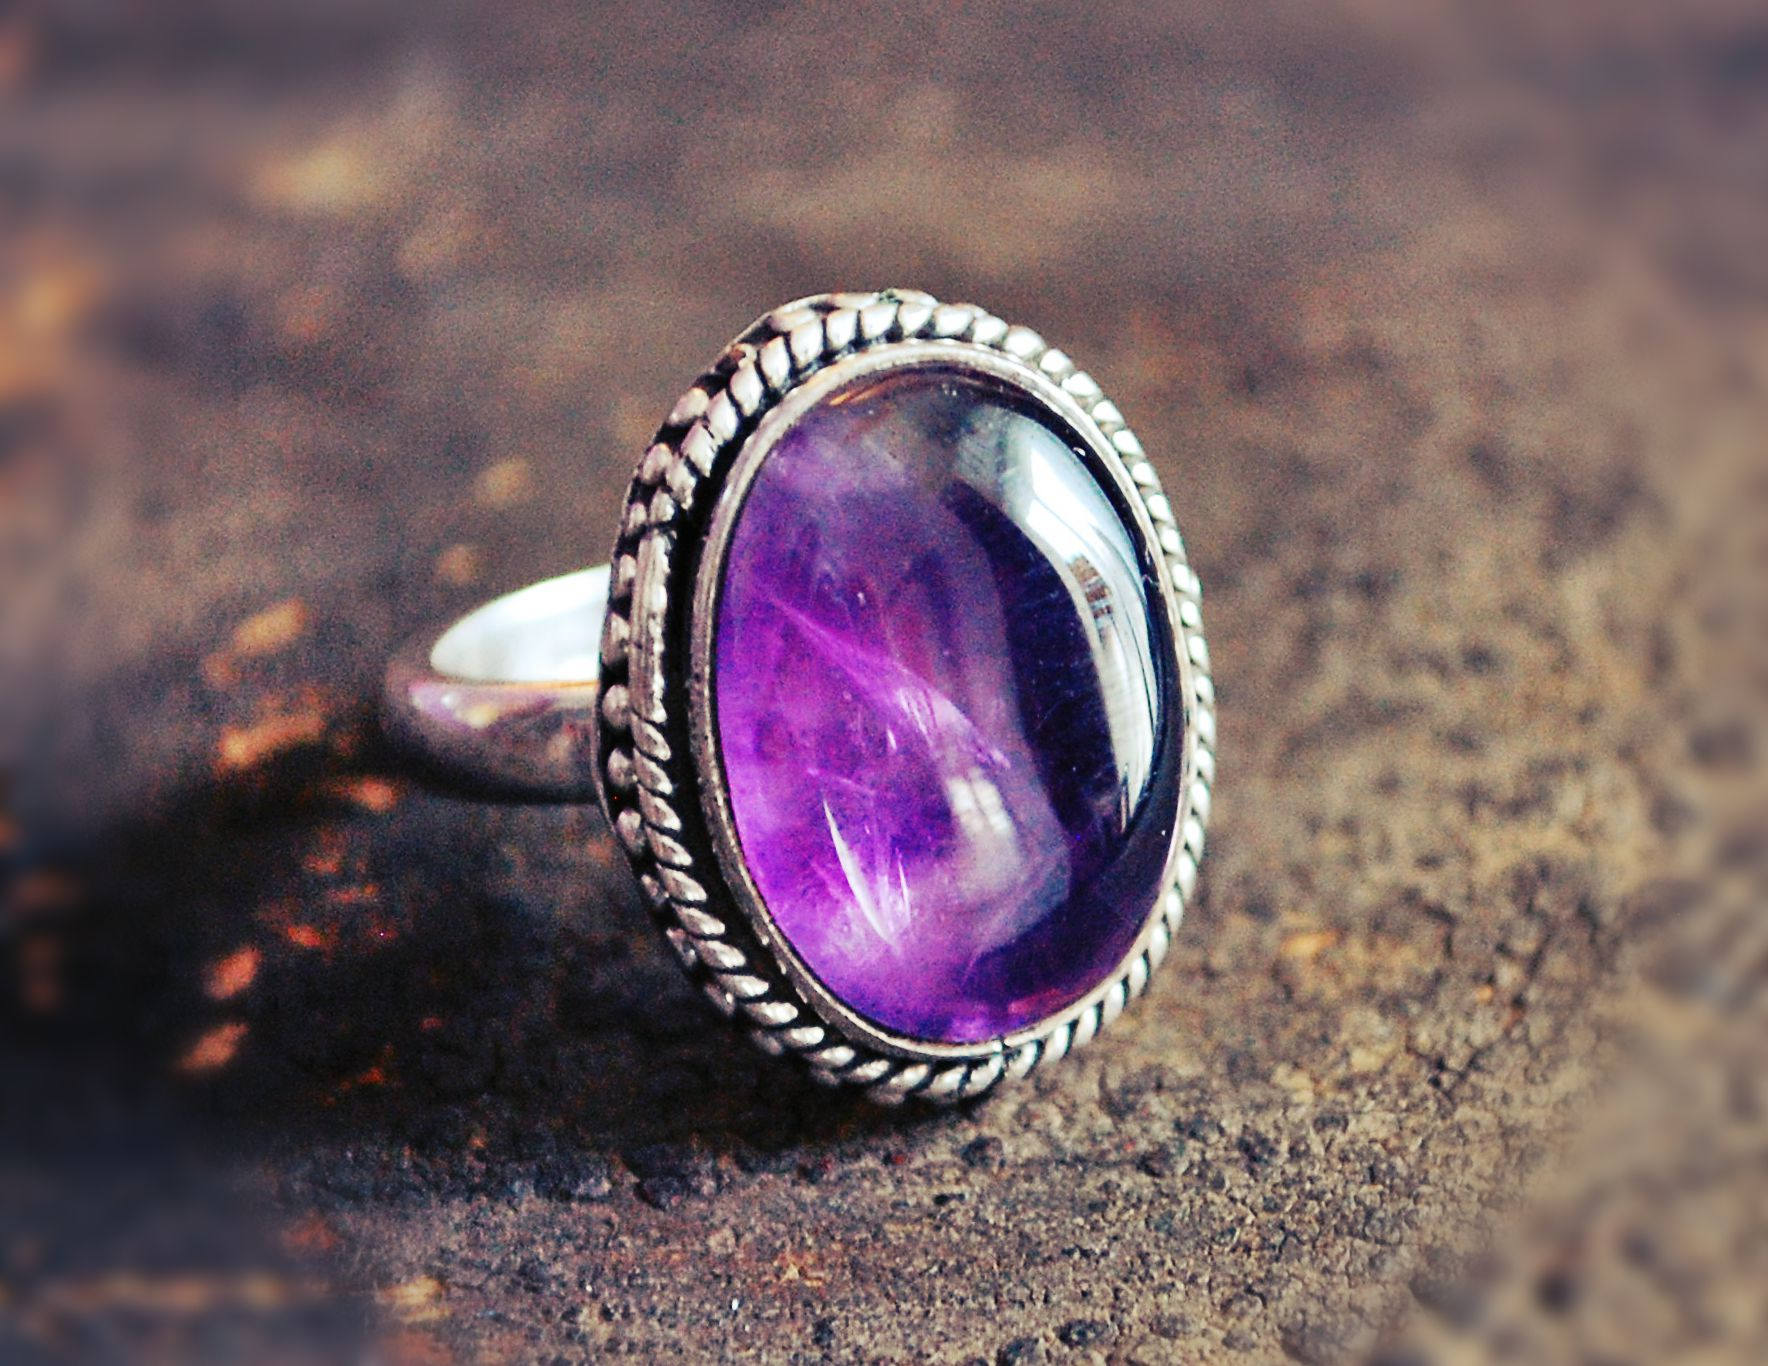 Amethyst Ring from India - Size 4.5 - Indian Amethyst Ring - Ethnic Amethyst Ring - Indian Jewelry - Ethnic Ring - Amethyst Ring